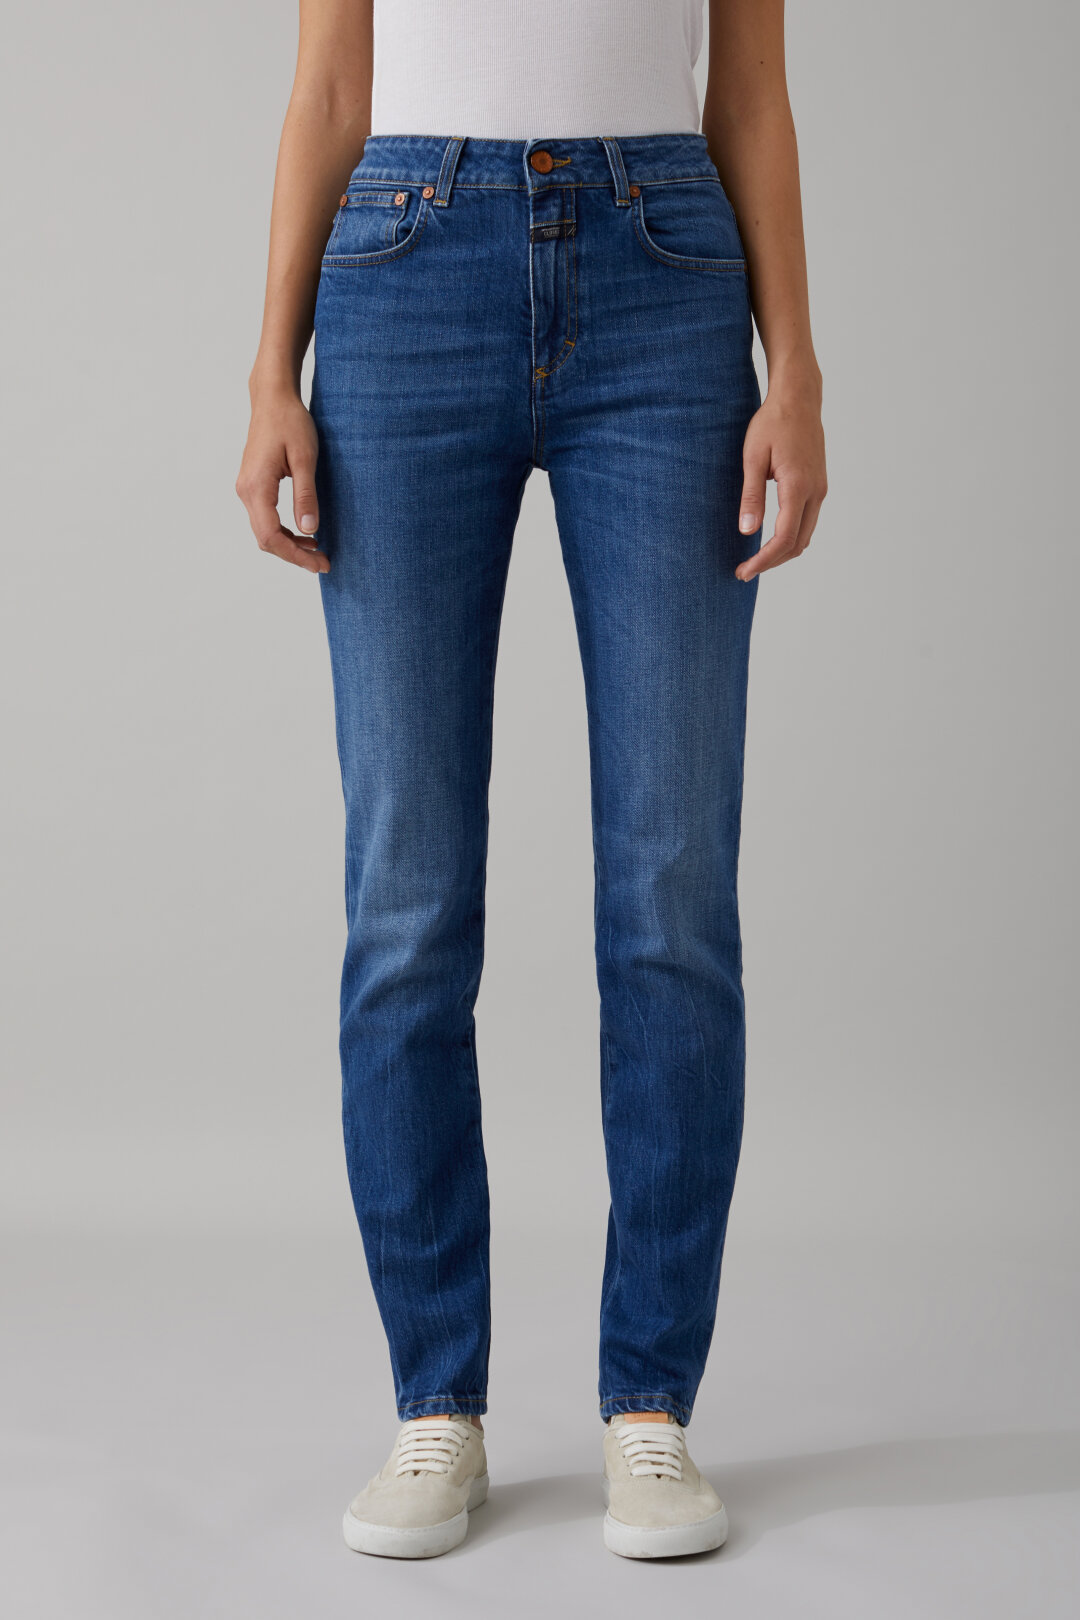 Britney Authentic Blue Stretch Denim